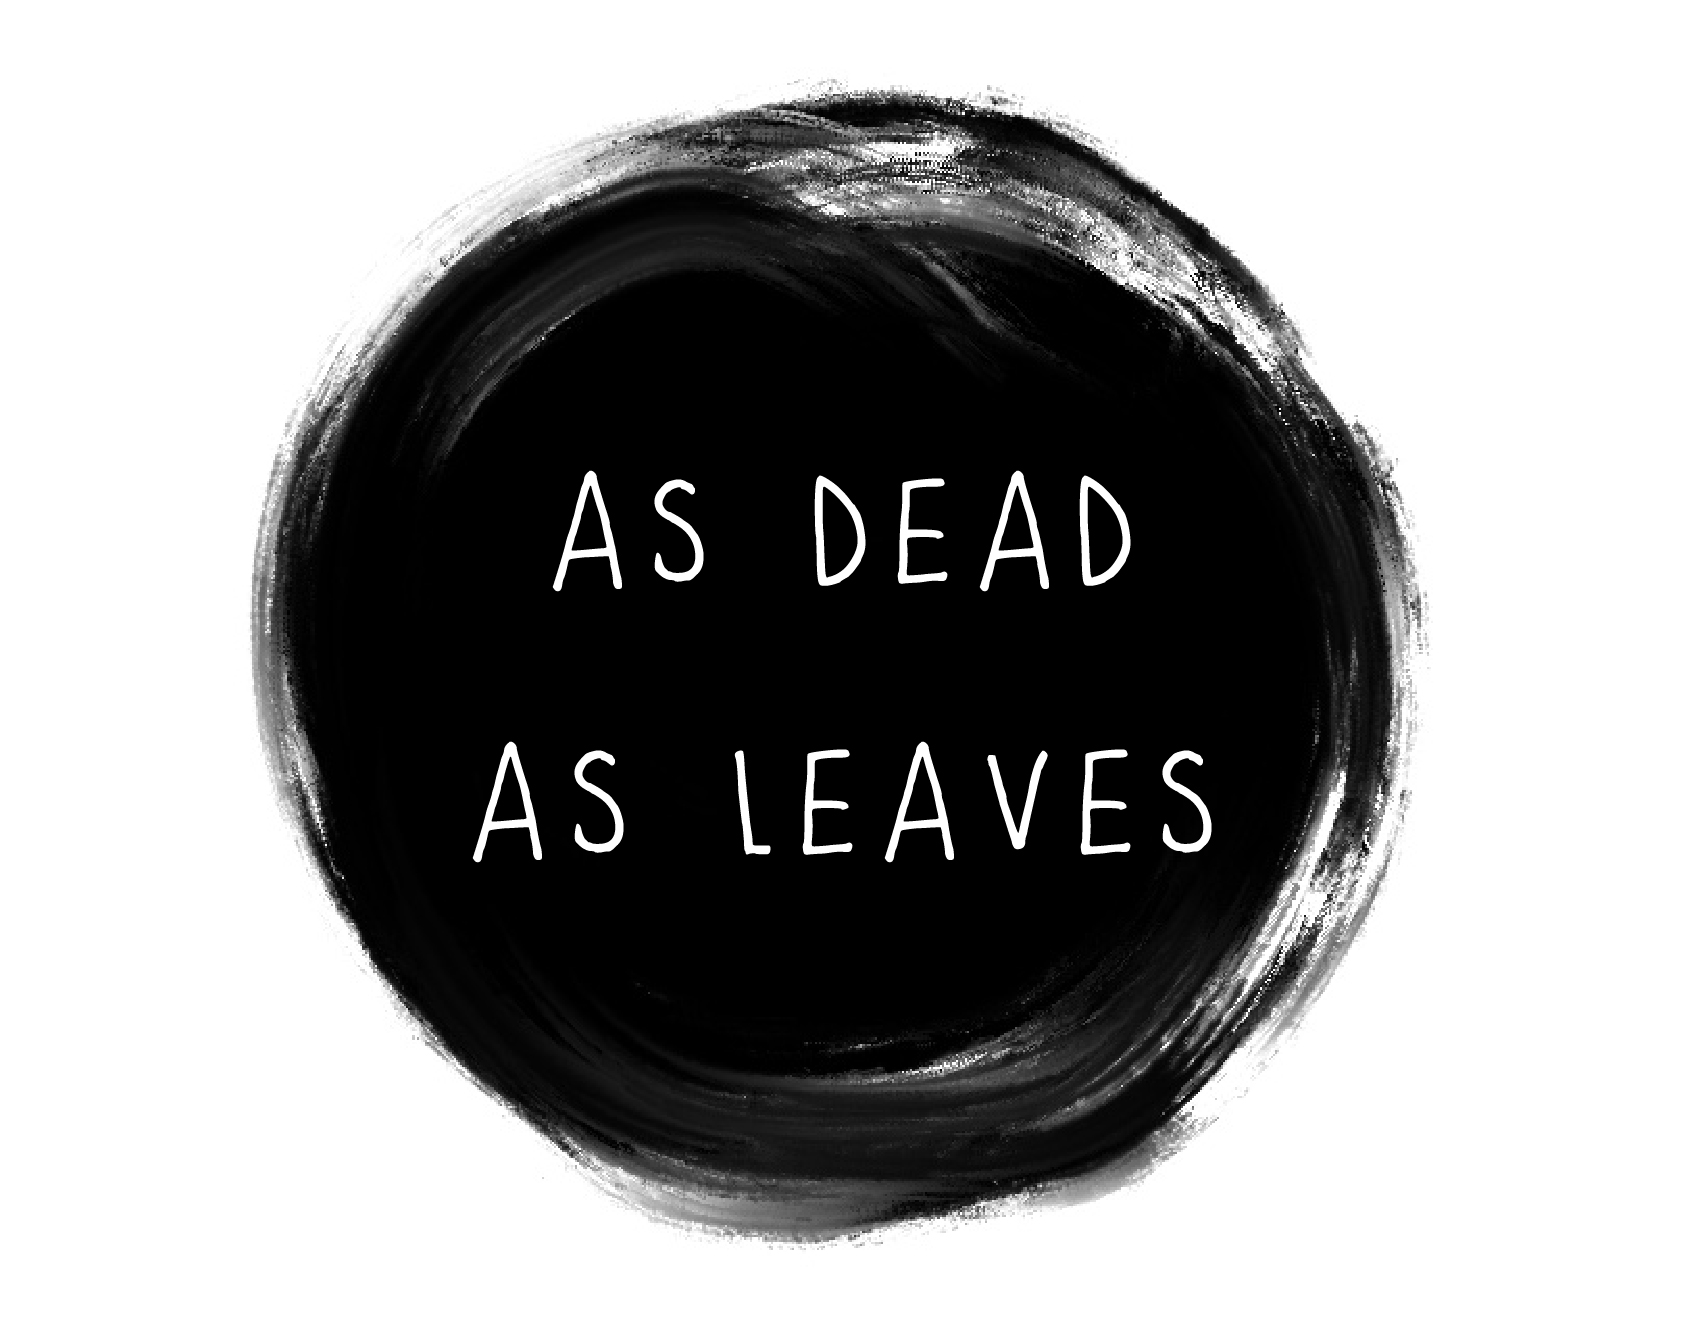 AS DEAD AS LEAVES - Illustration publication